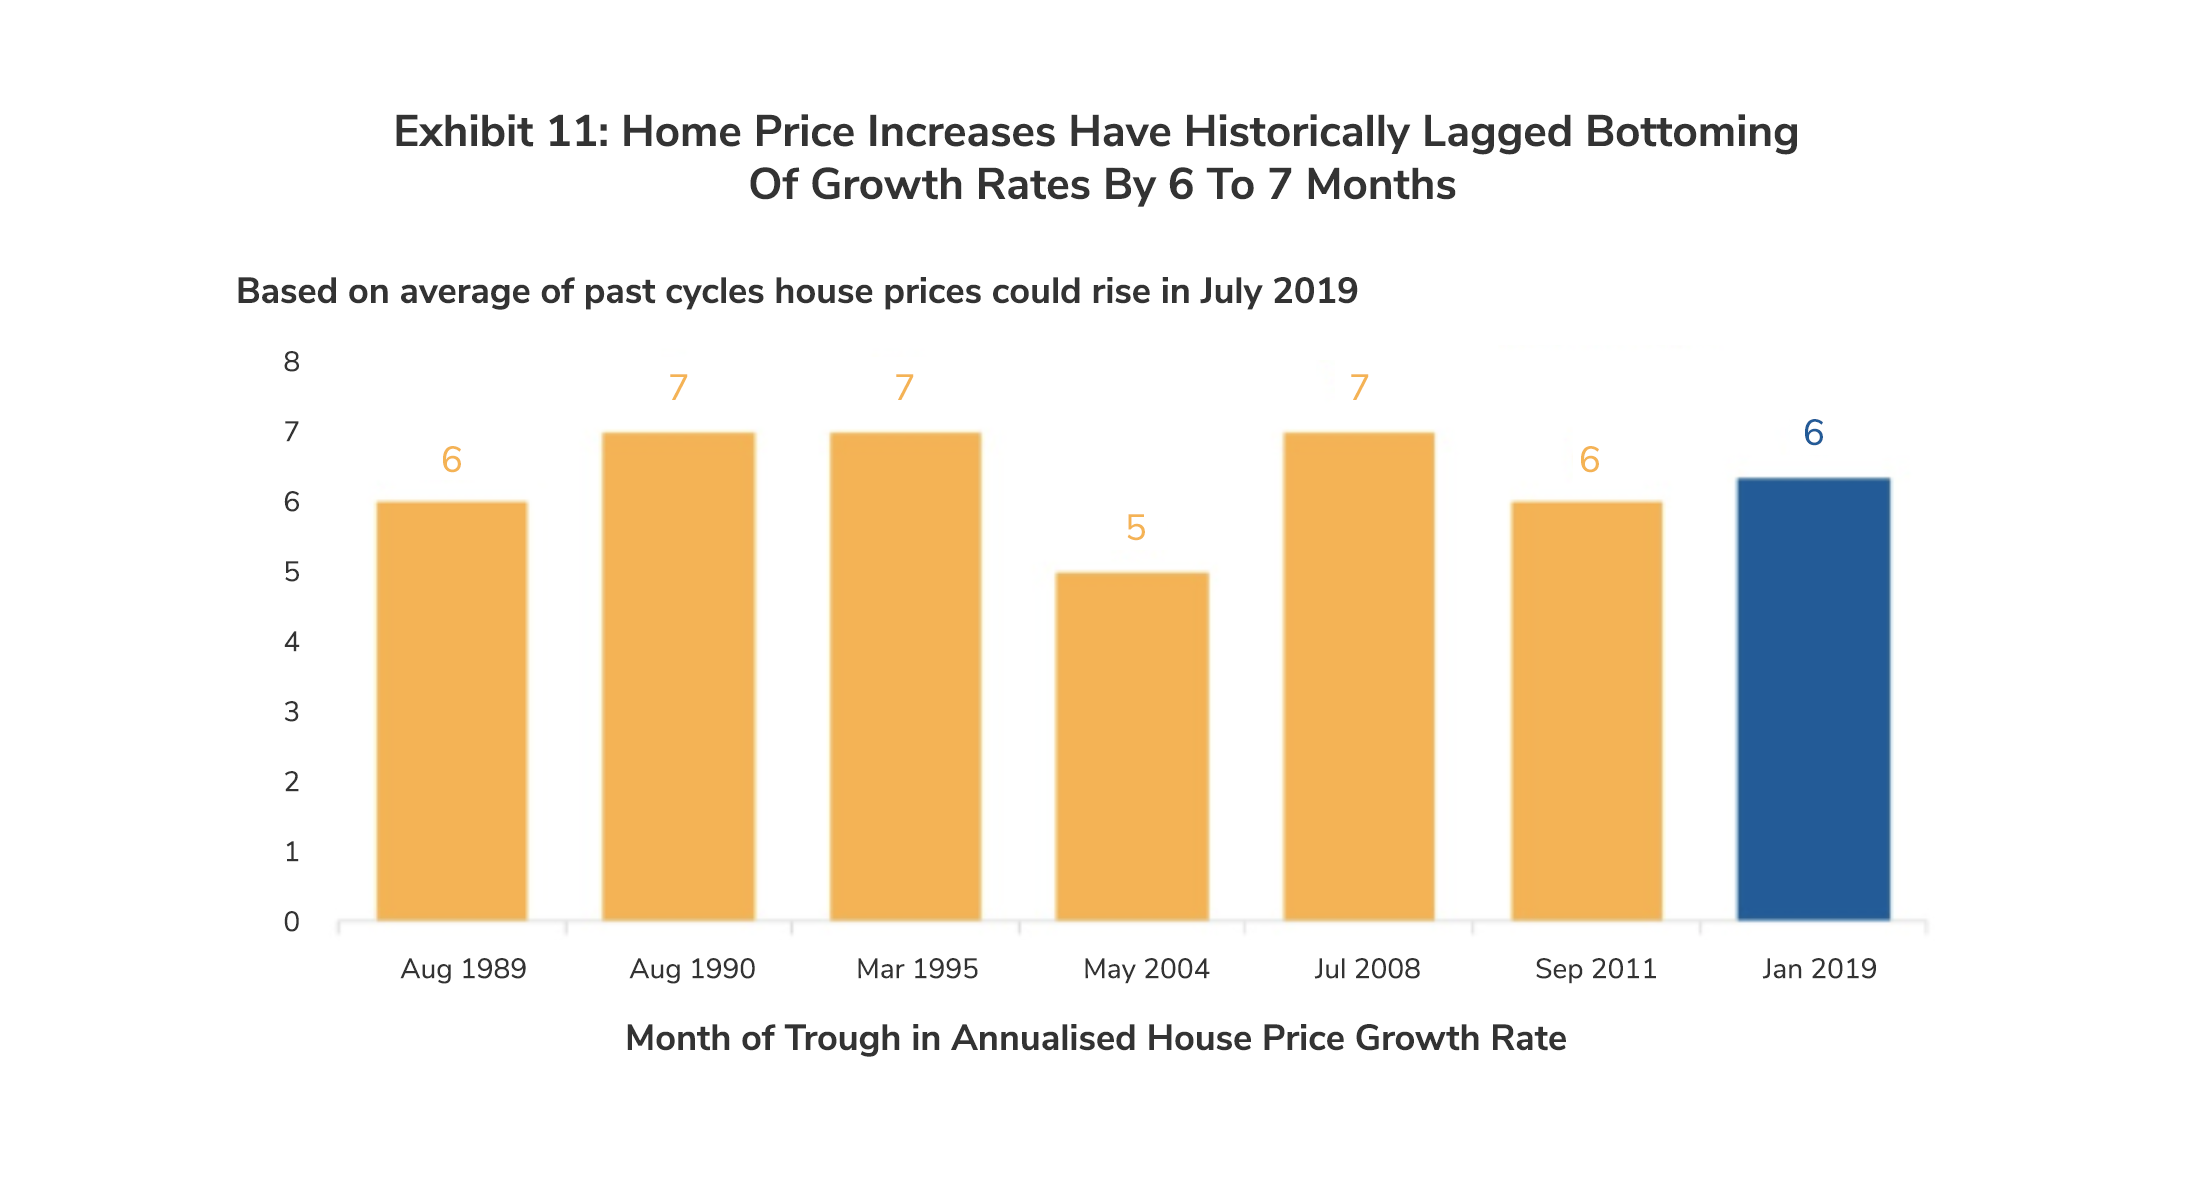 Home Prices Increases Have Historically Lagged Bottoming of Growth by 6 to 7 Months